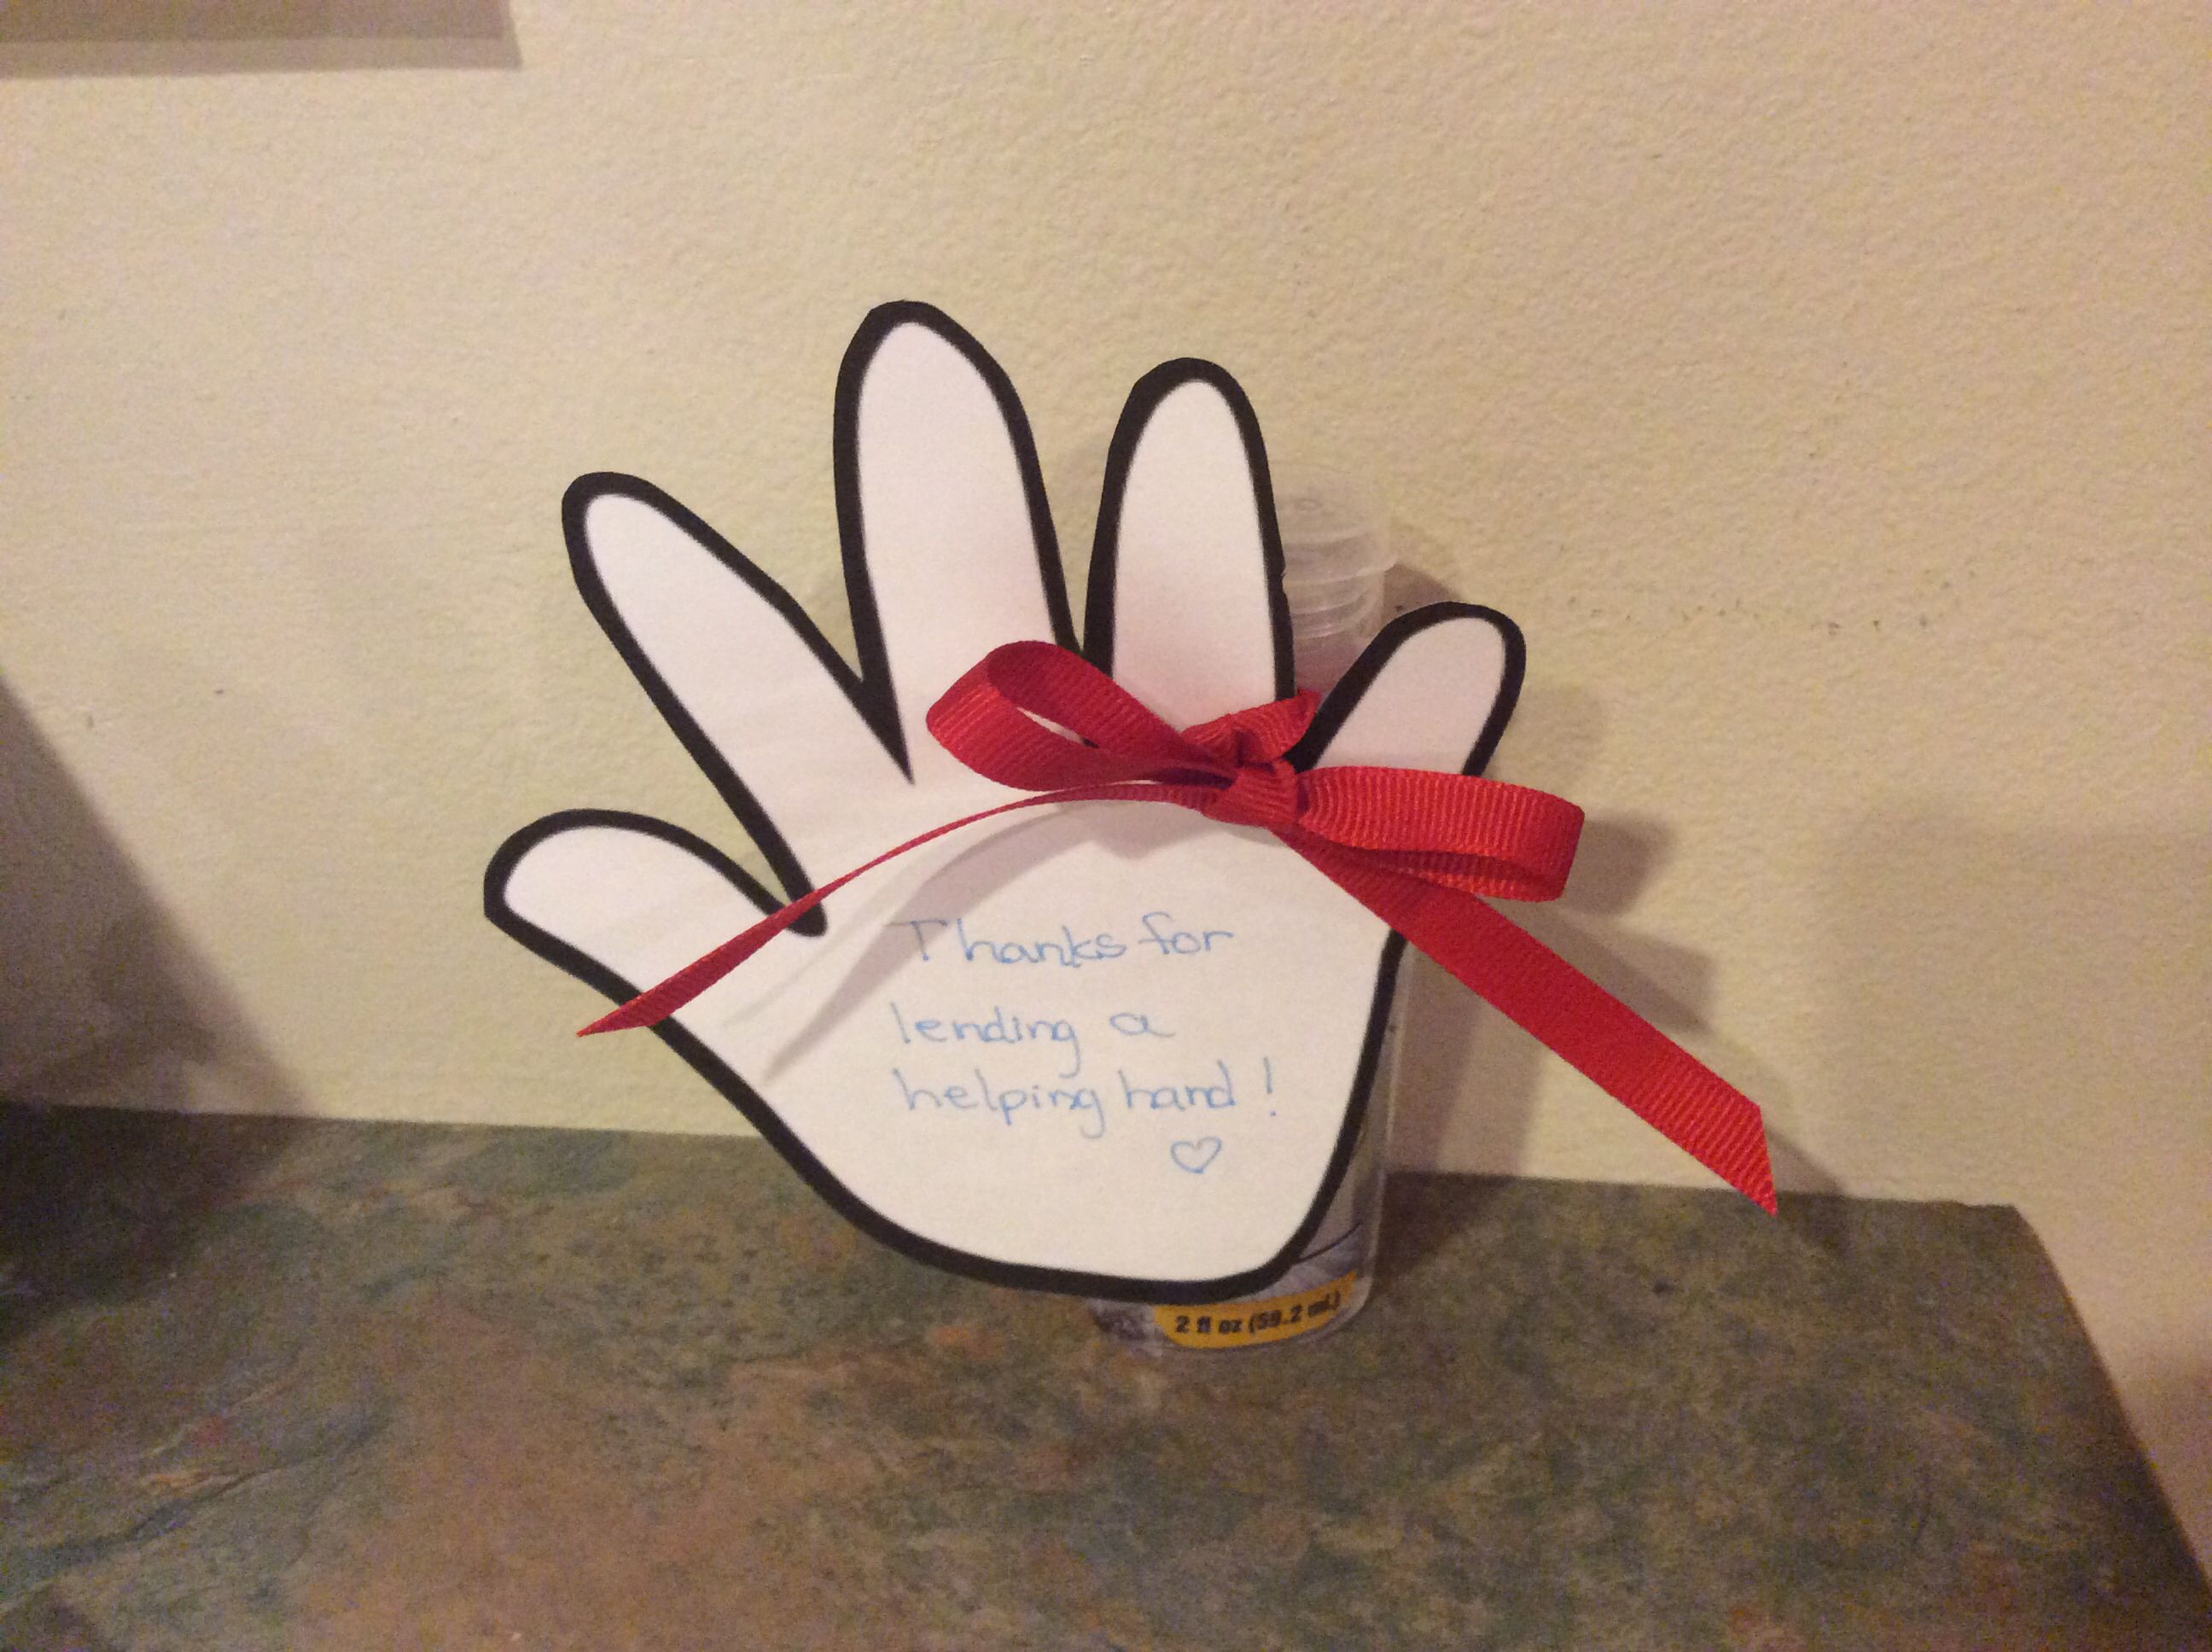 Volunteer Appreciation Gift Idea Hand Sanitizer With Hand Print